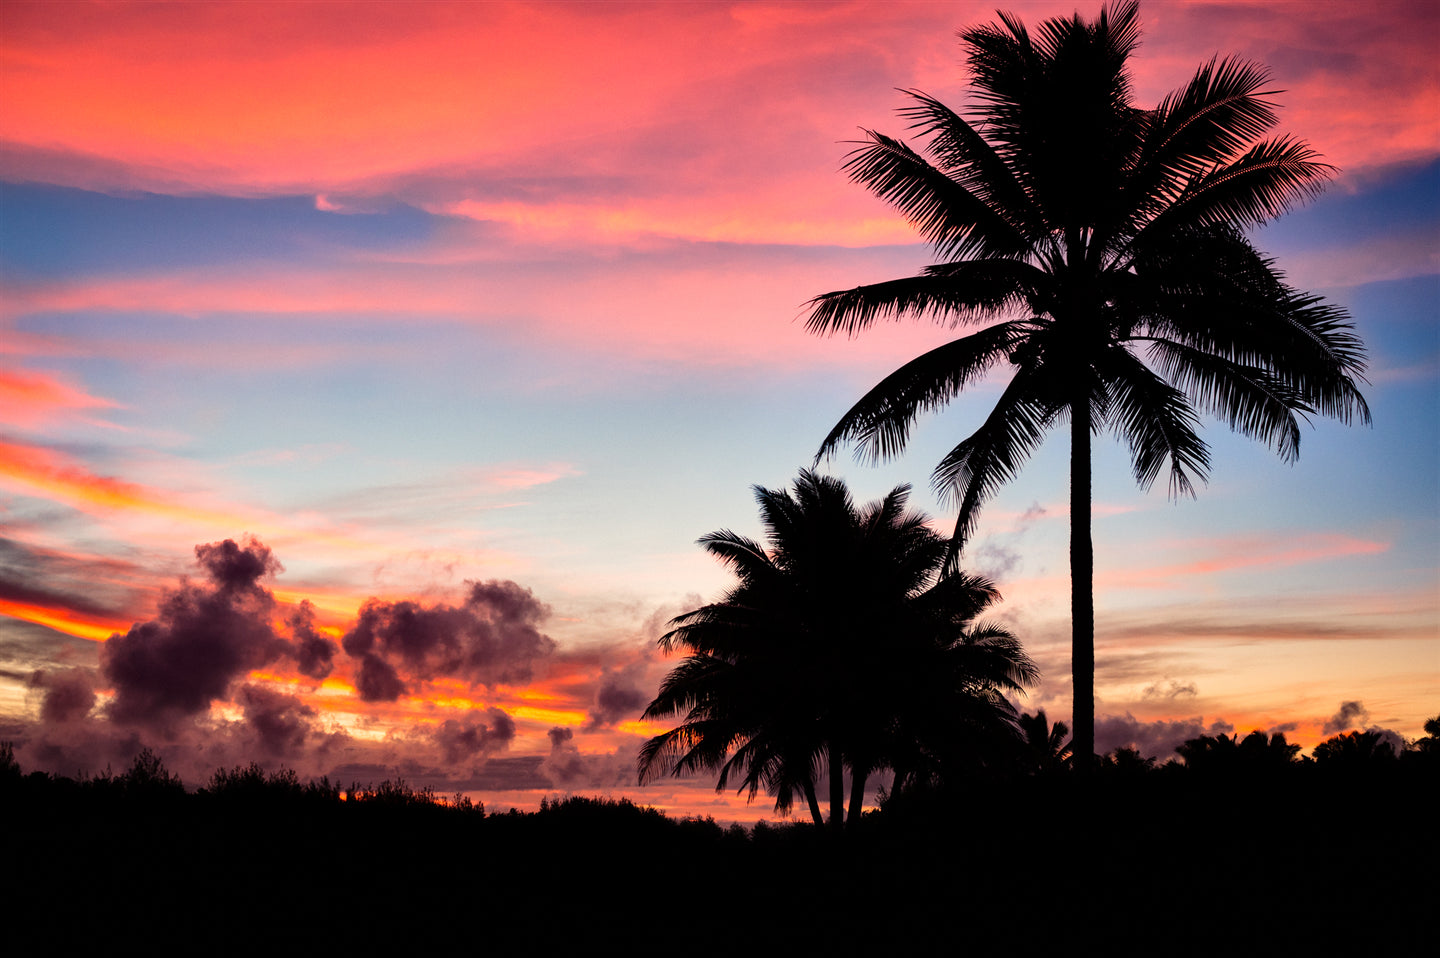 COOK ISLANDS PALMS